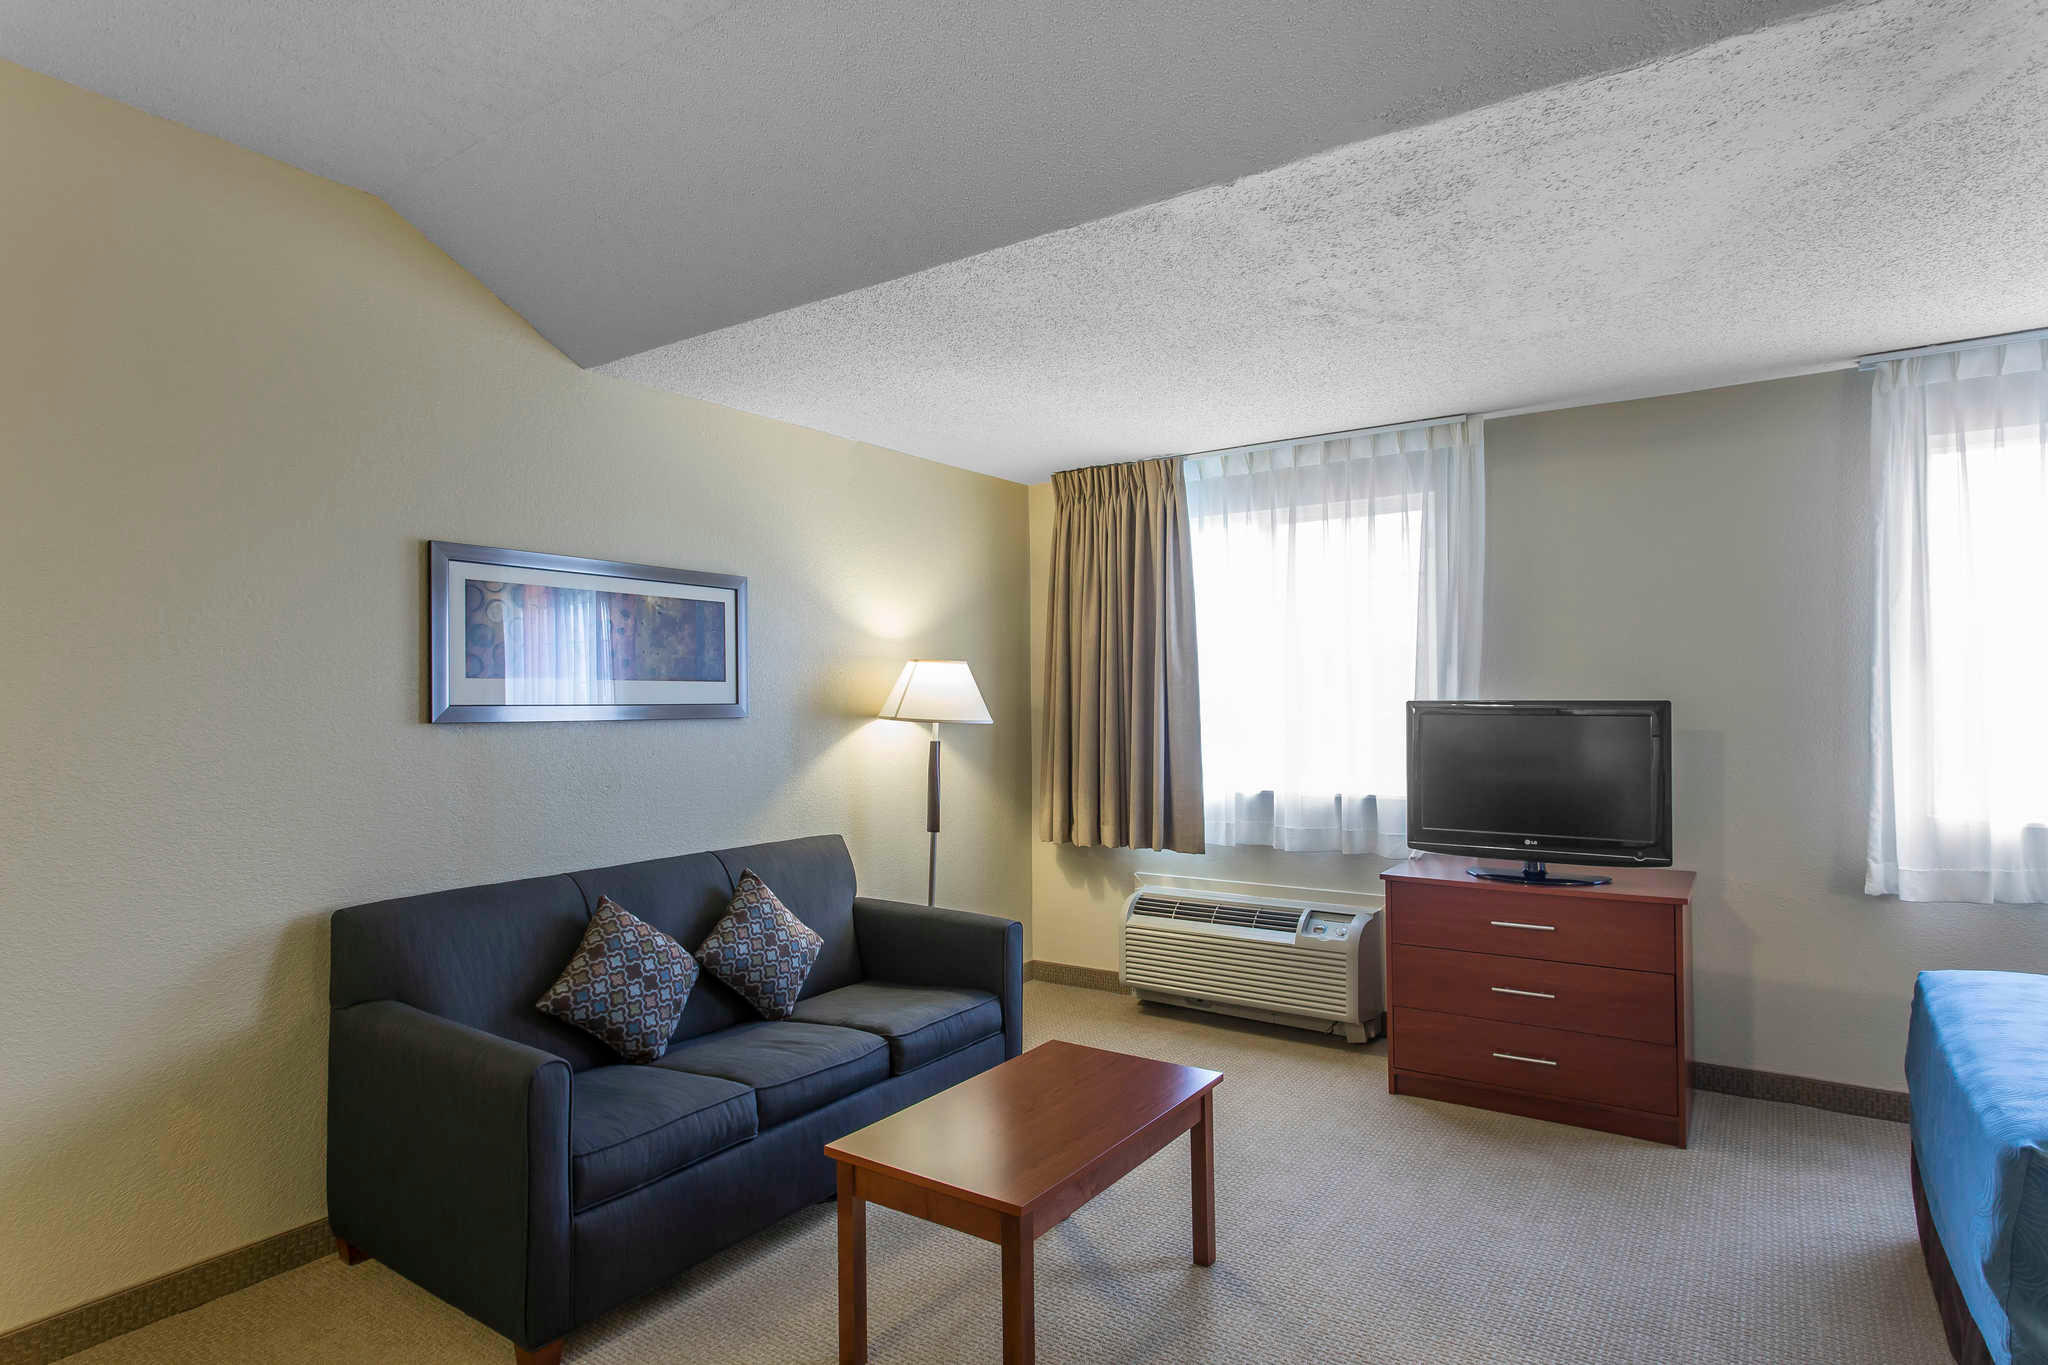 MainStay Suites image 30